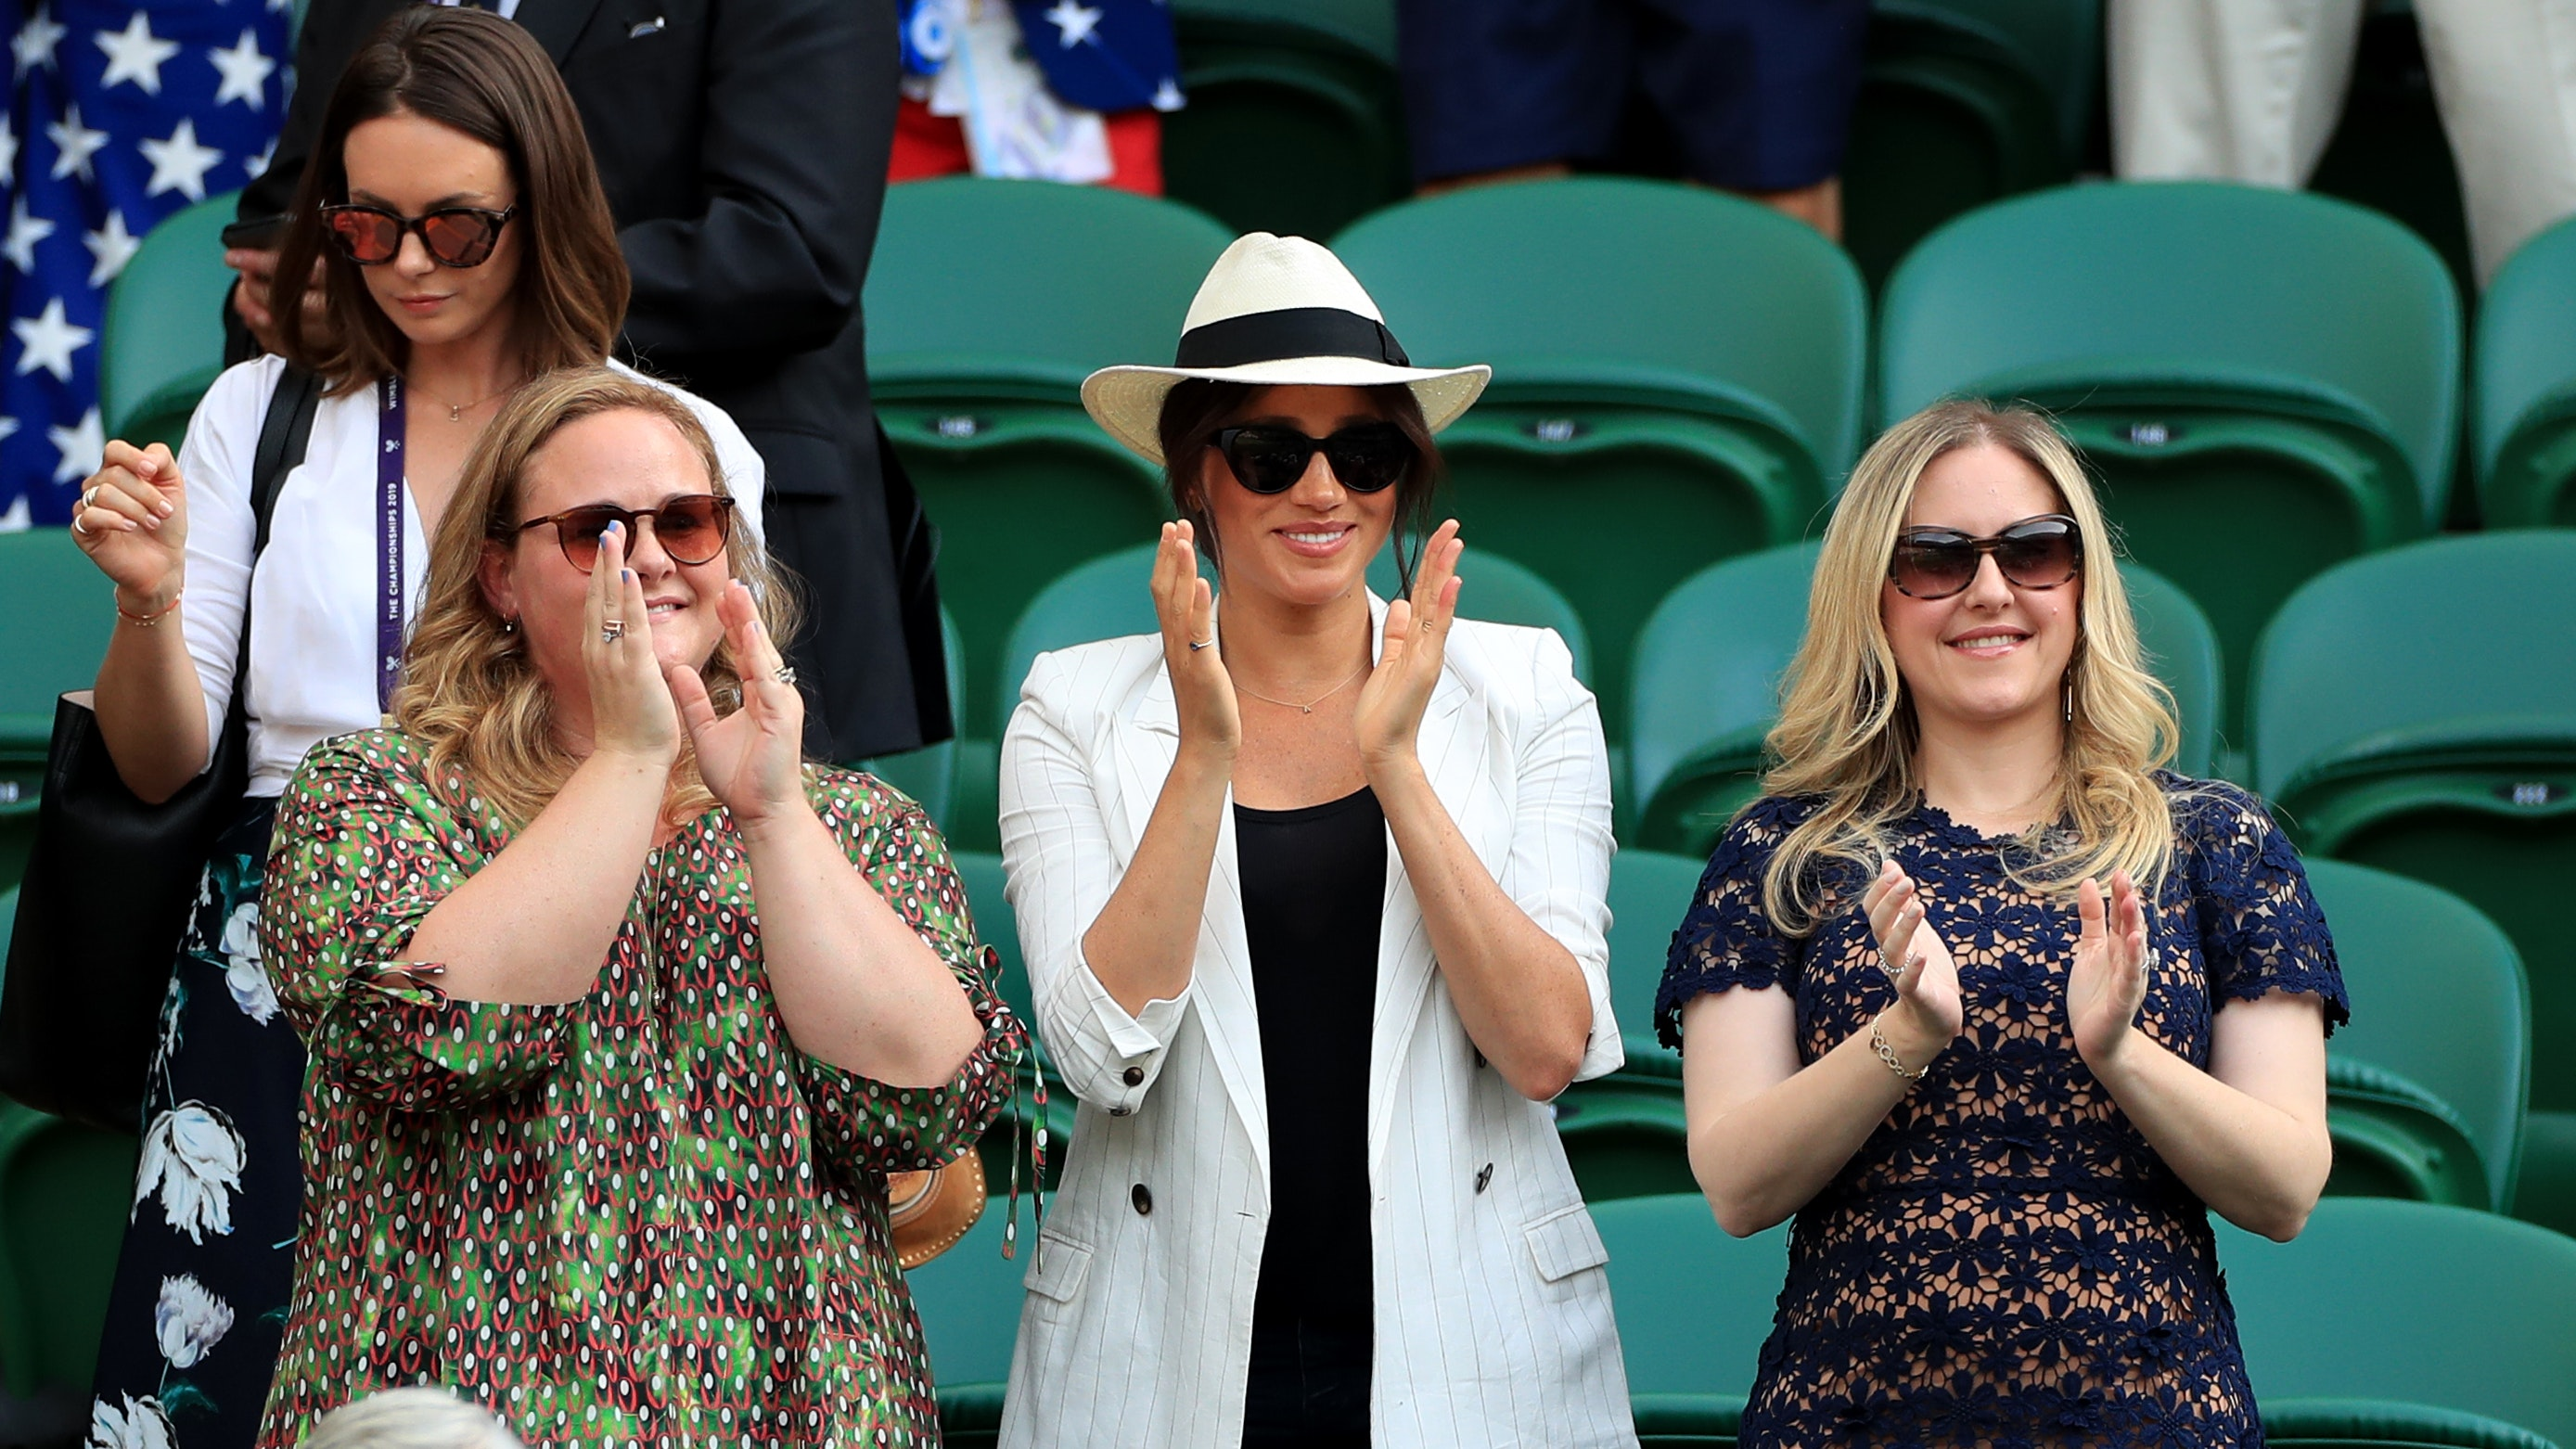 Meghan Markle and Kate Middleton watch Serena Williams at Wimbledon